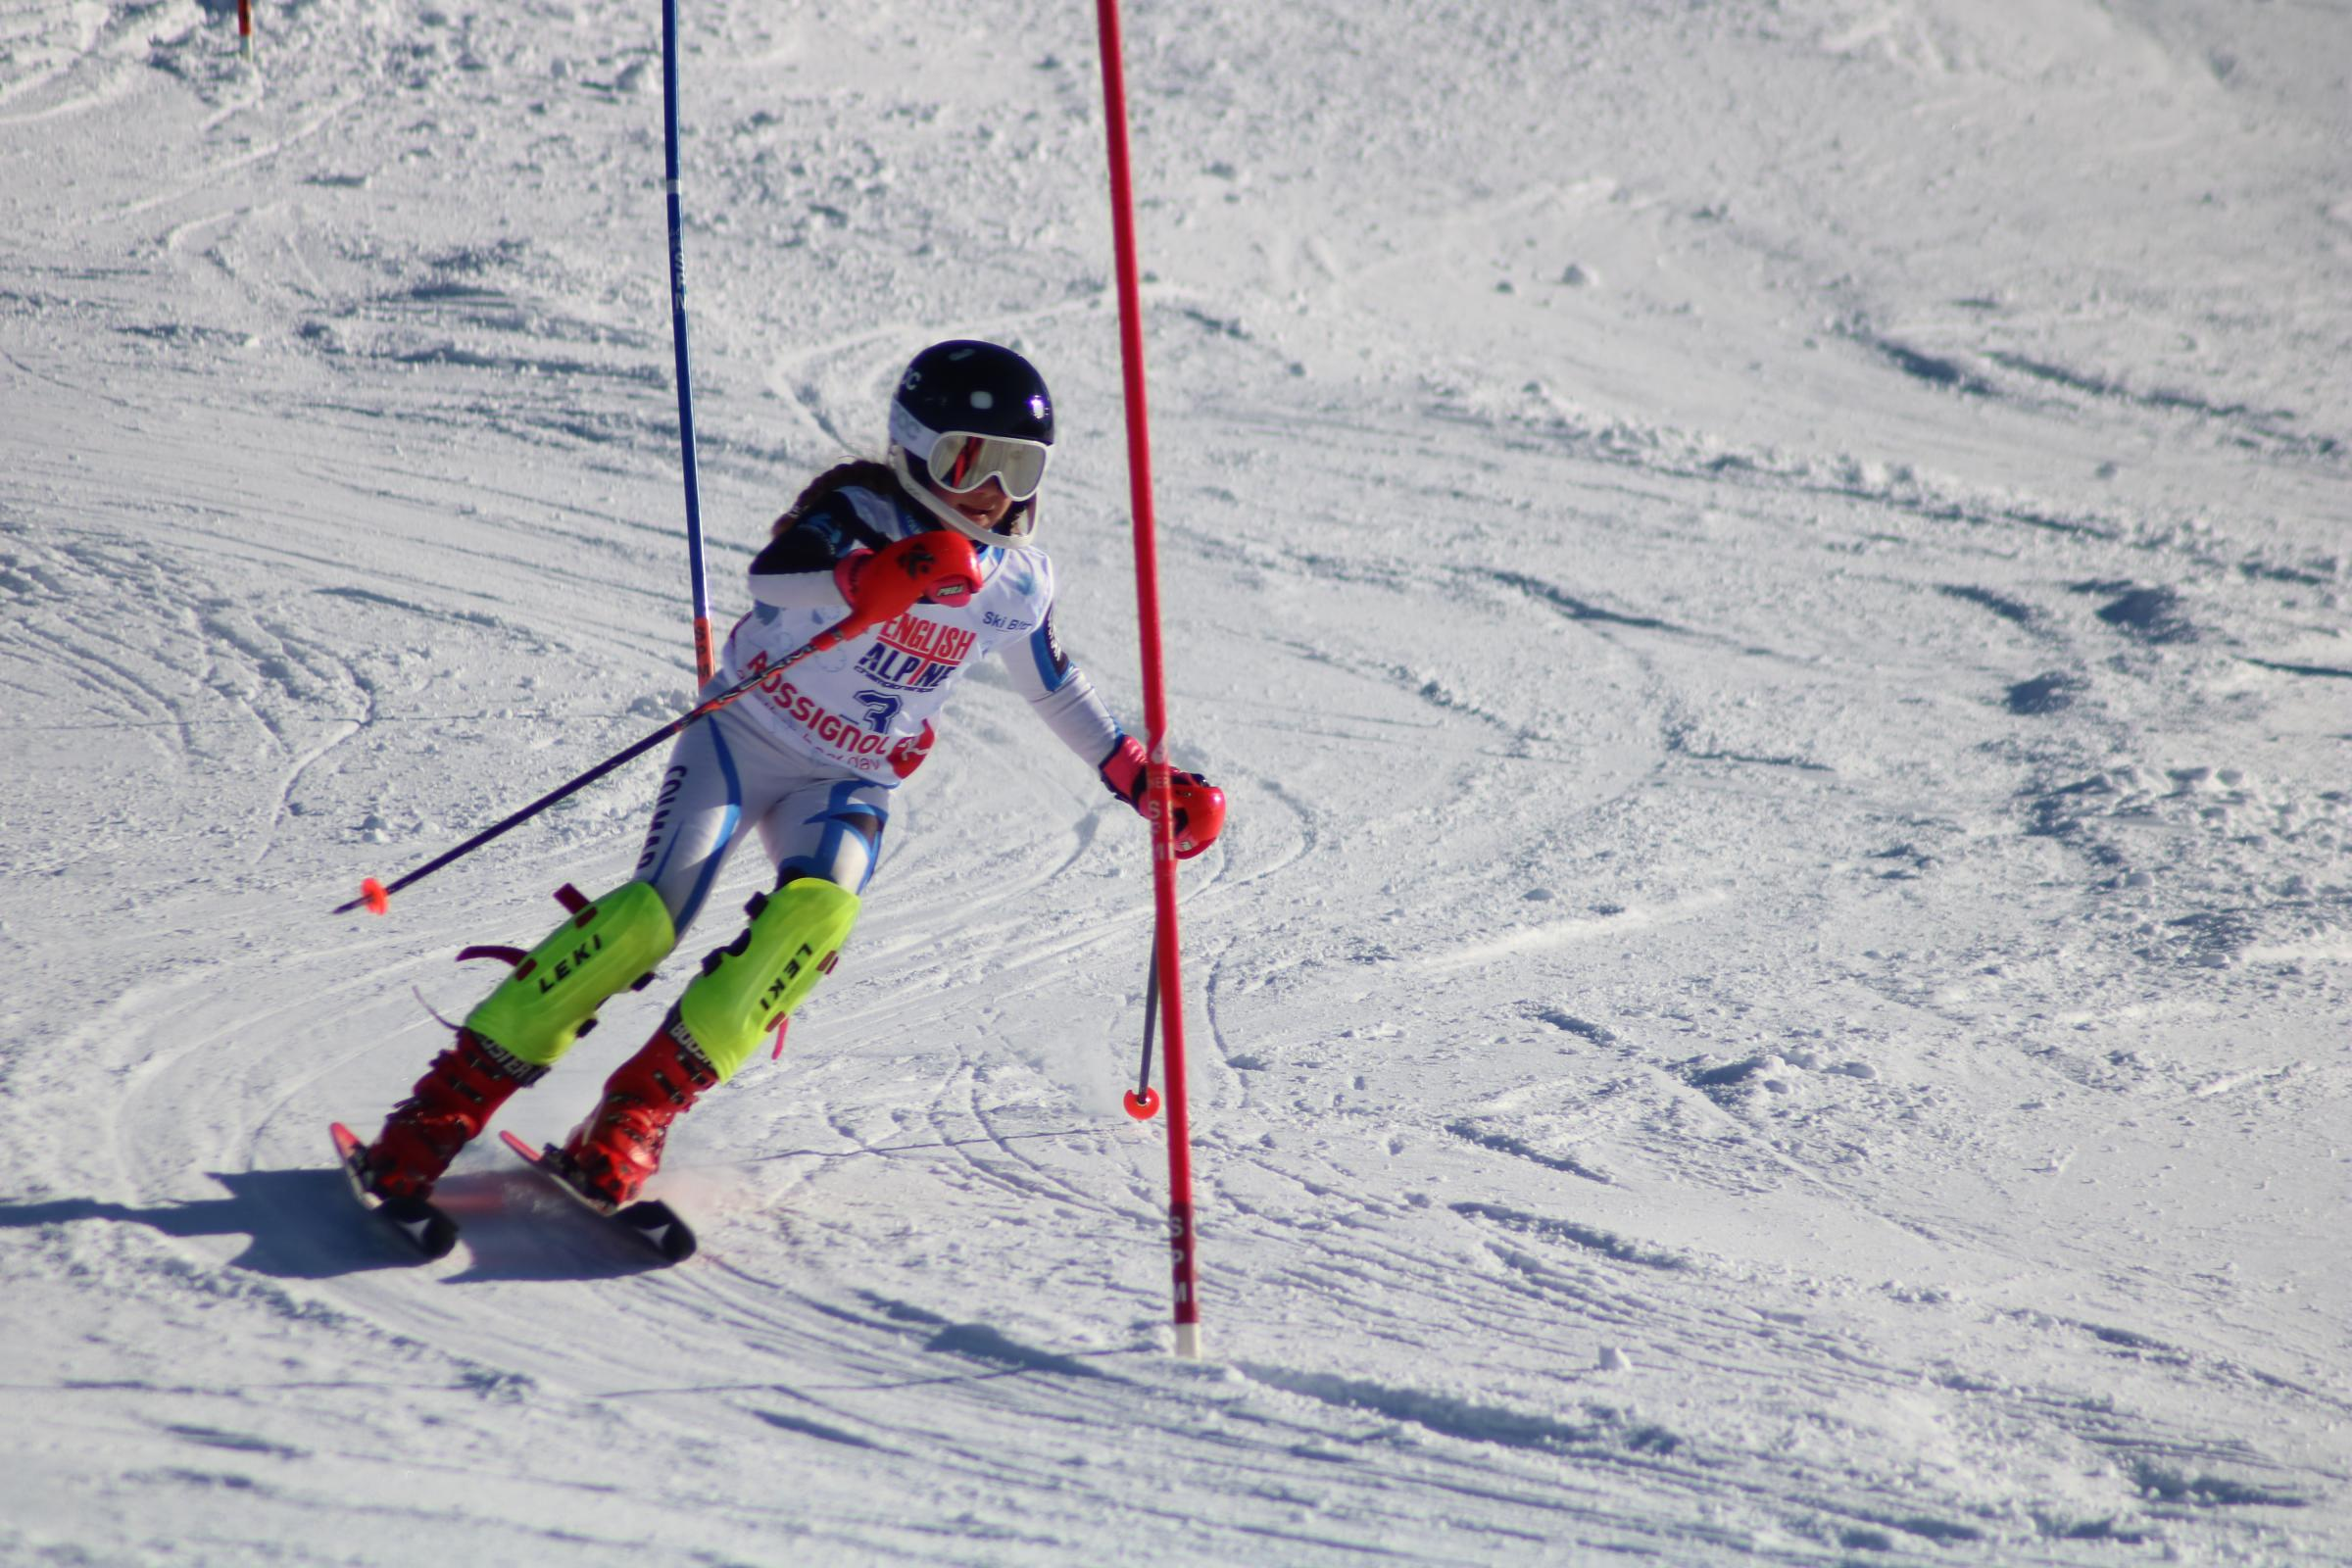 Despite a third-place finish in the Super-G last year, the 13-year-old speed-demon was not satisfied with her performance in Bormio